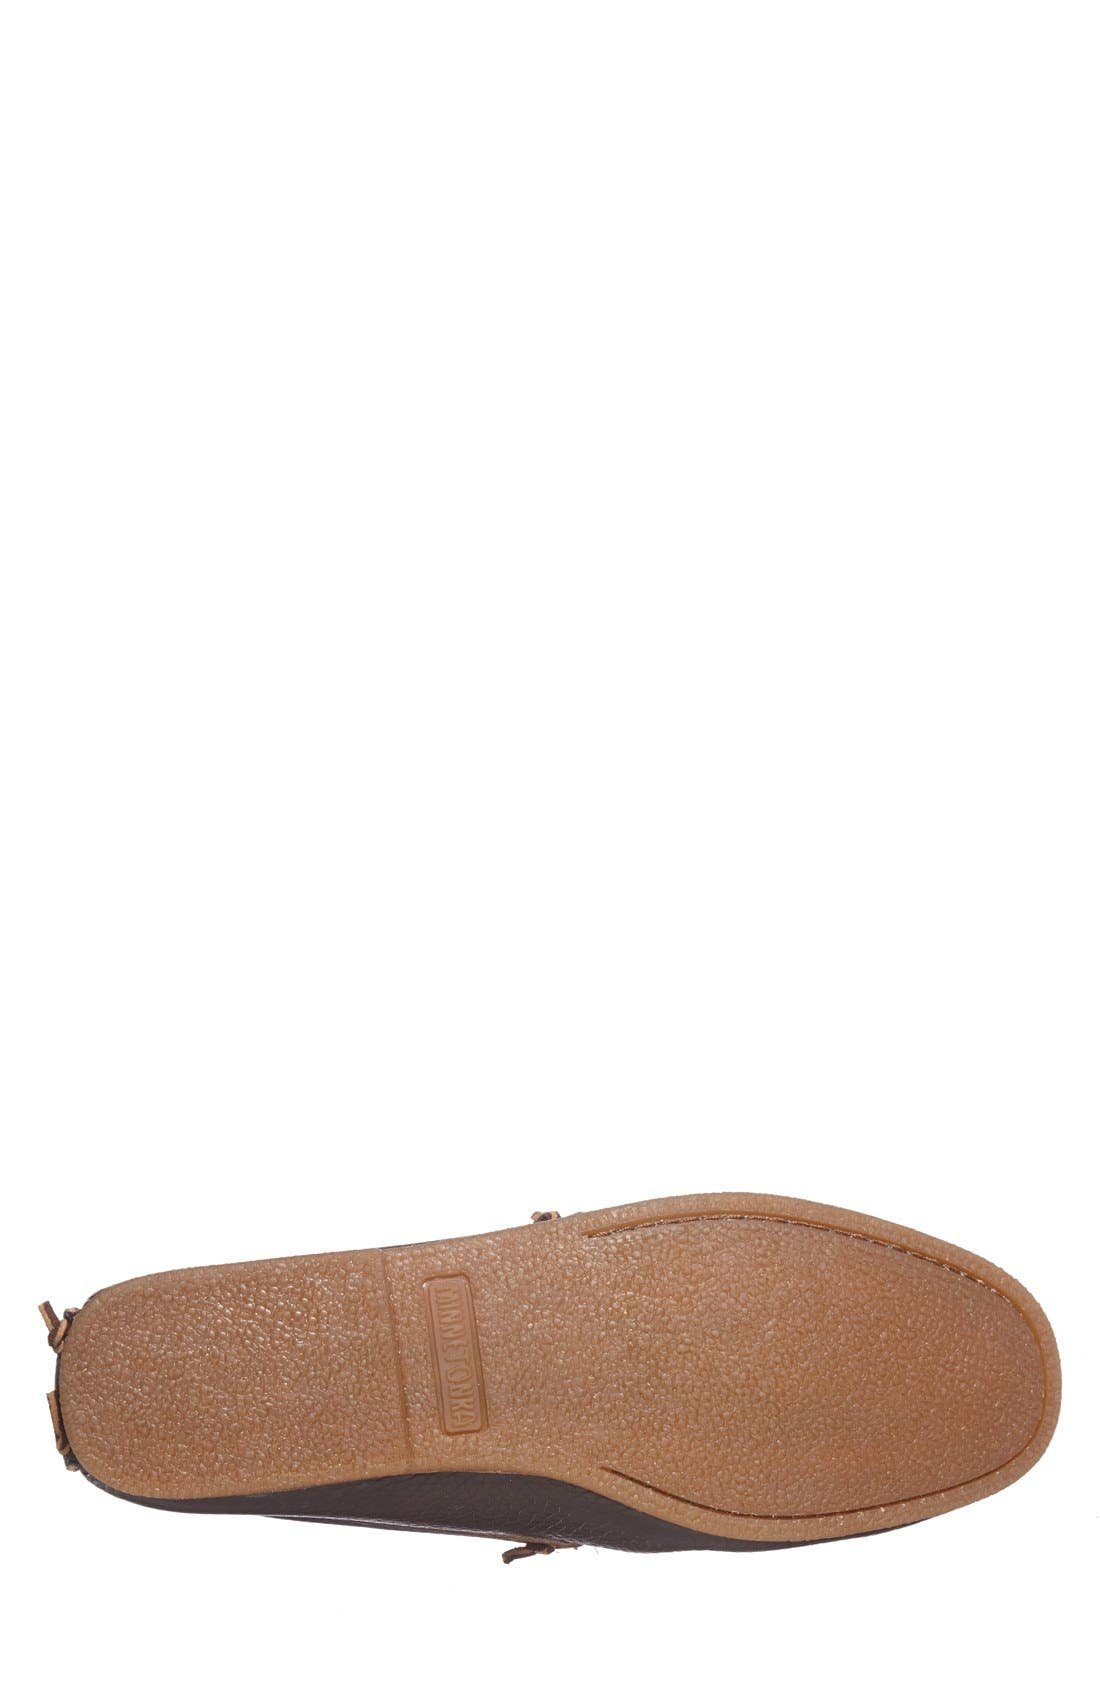 Venetian Loafer,                             Alternate thumbnail 4, color,                             Dark Brown